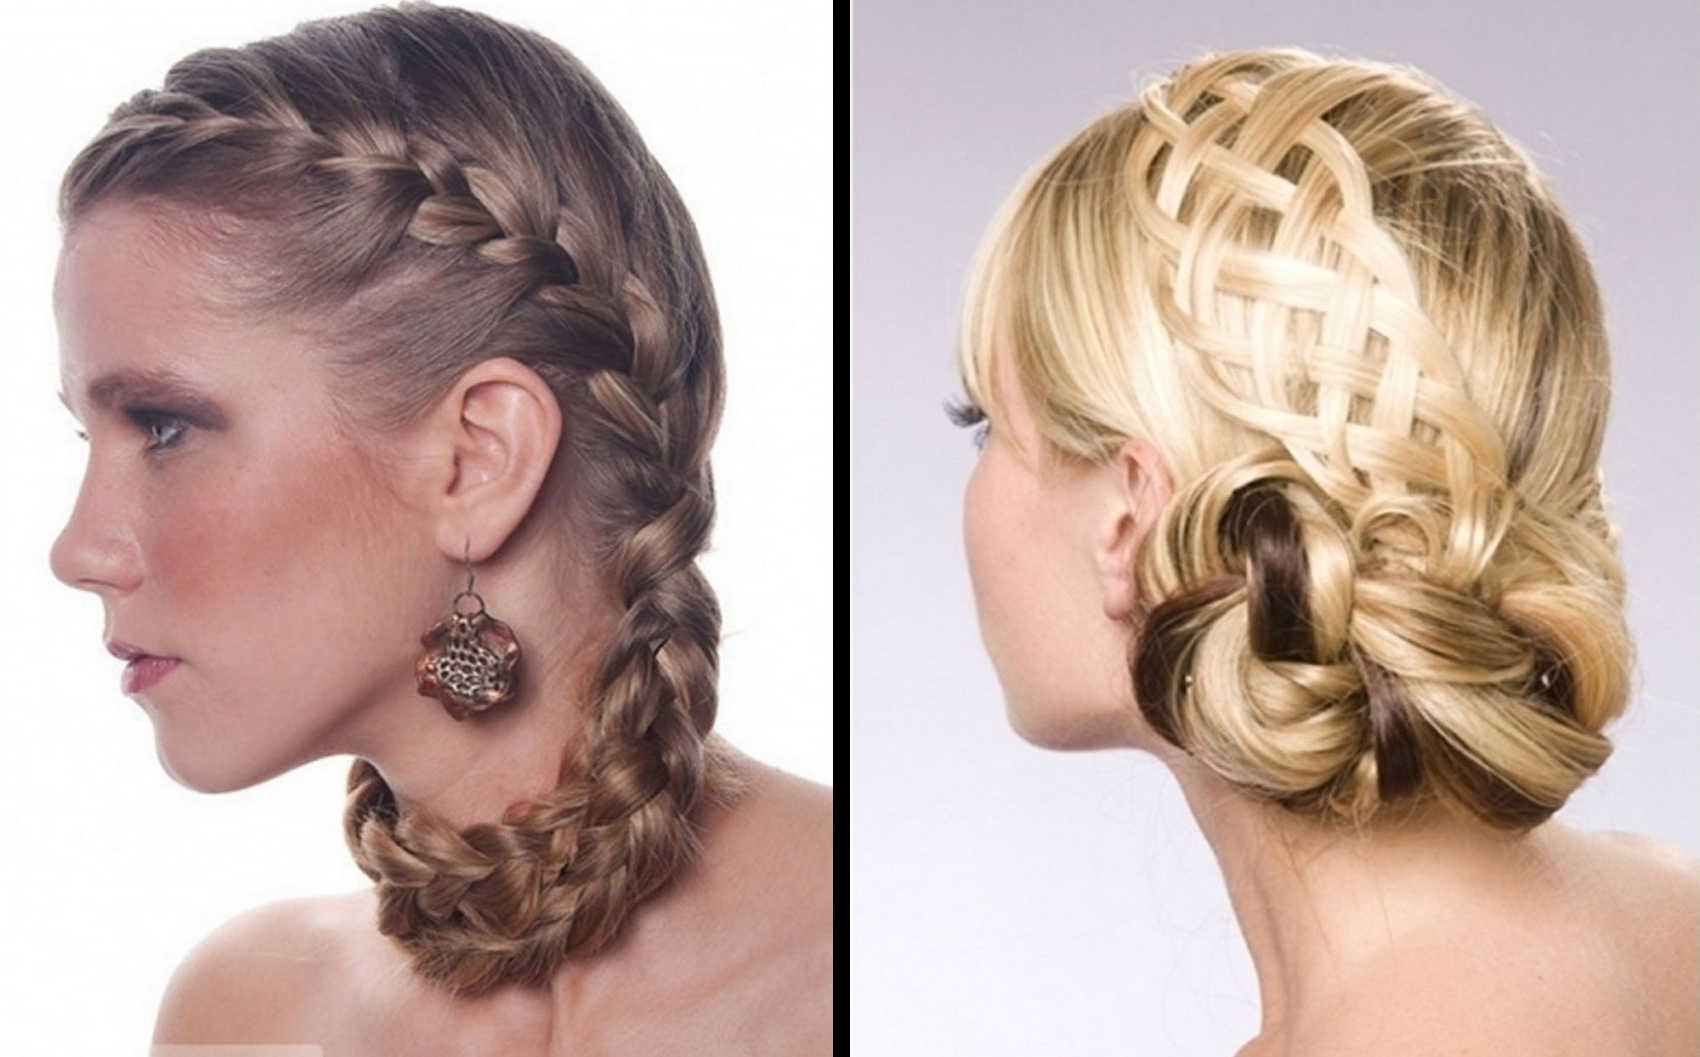 Braided Updo Hairstyles Hair Salon Formal For Women | Medium Hair Regarding Formal Updo Hairstyles For Medium Hair (View 4 of 15)